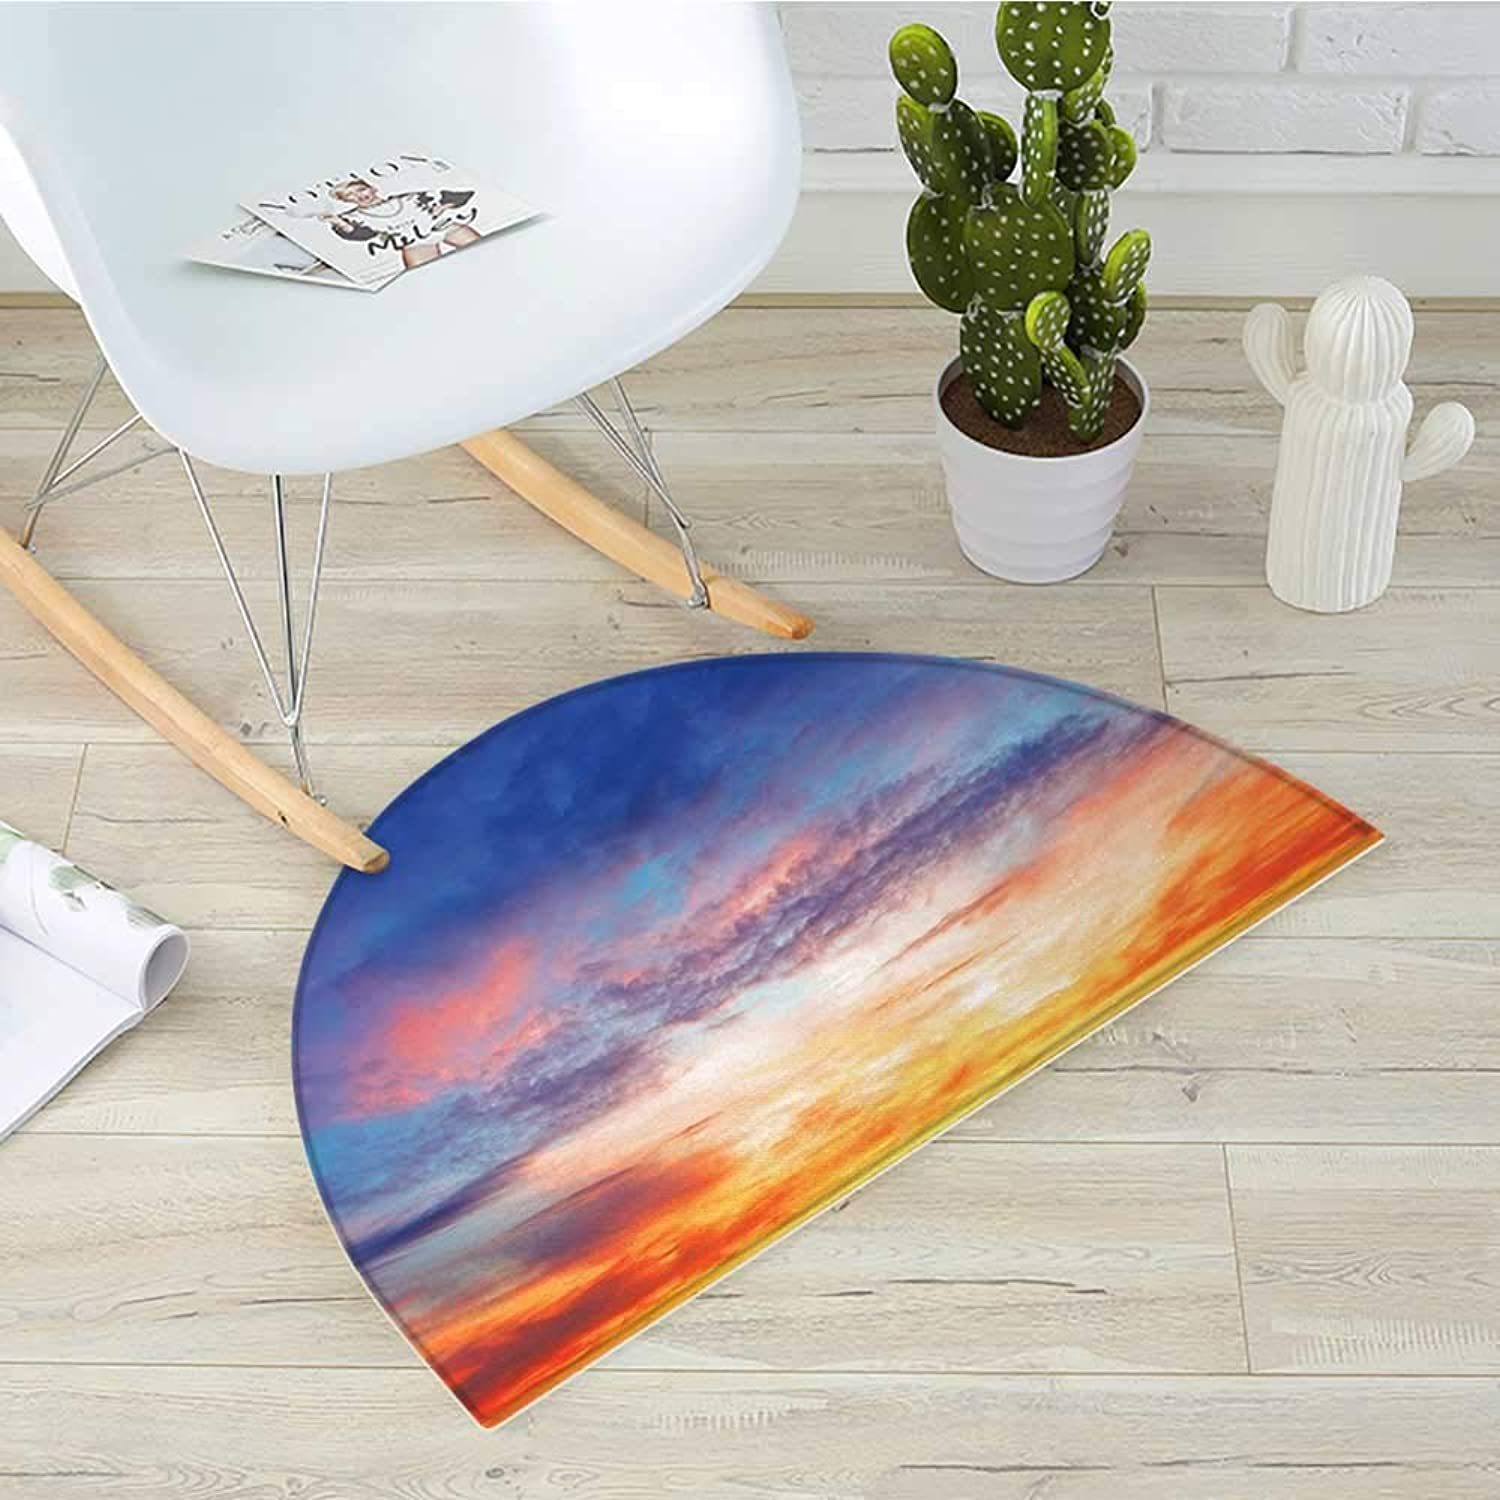 Landscape Semicircular Cushioncolorful Vivid Illuminated Evening Sky During Sunset Cloudscape Scenic View Entry Door Mat H 39.3  xD 59  orange bluee